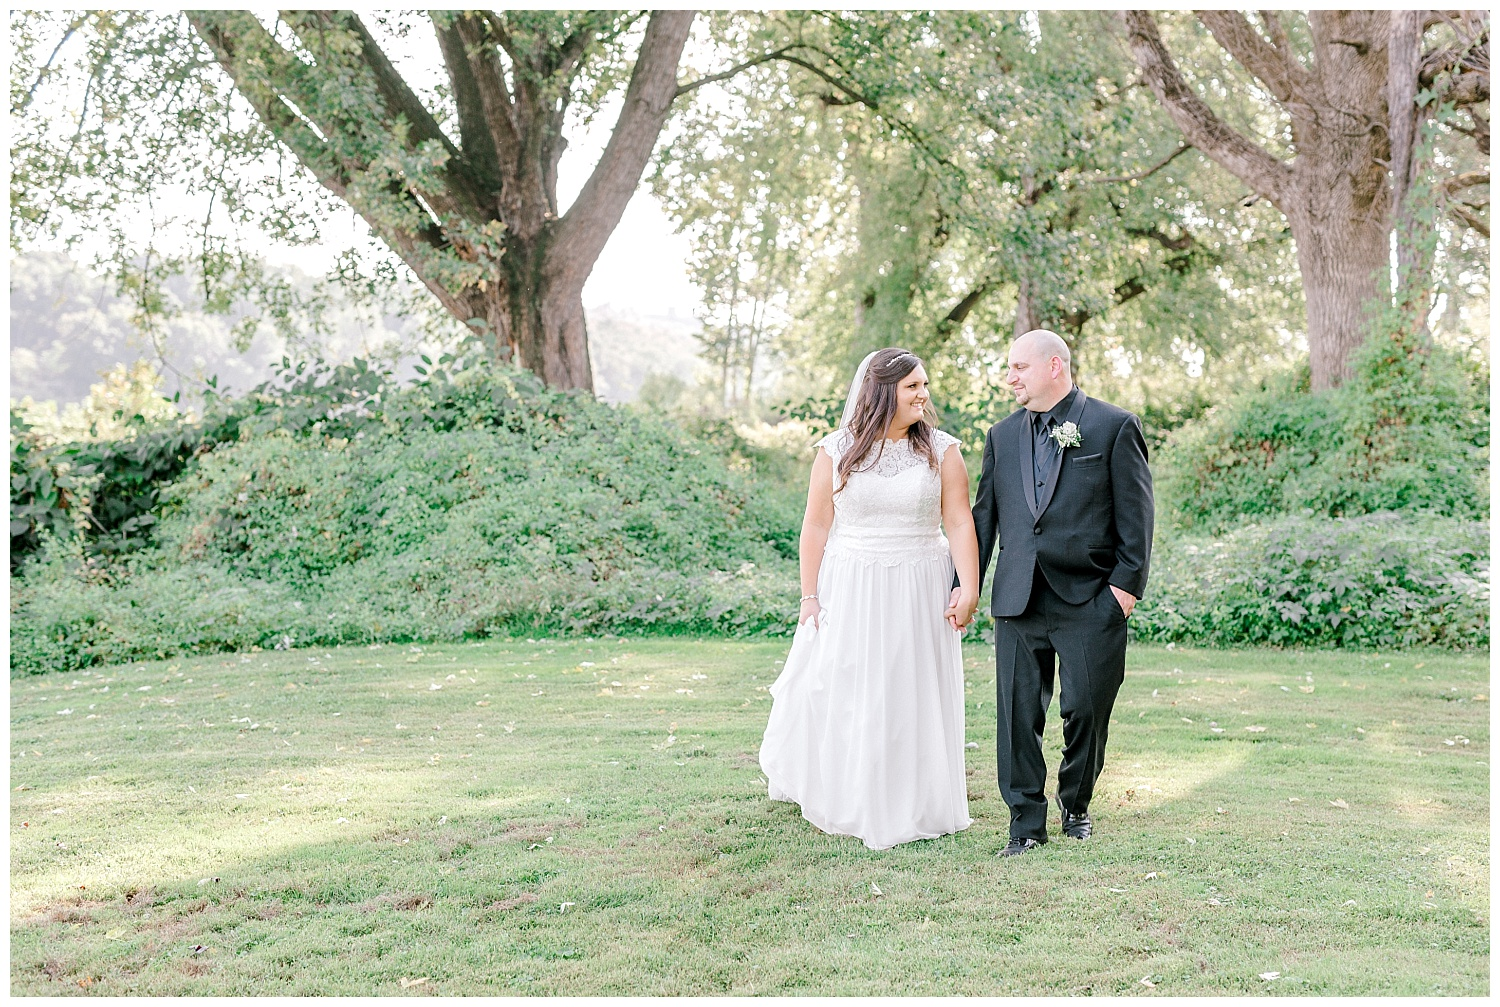 A Black and Gold Catholic Church Wedding in Wilkes Barre Pennsylvania by lehigh valley pennsylvania based wedding and lifestyle photographer Jeannie Lytle of Lytle Photography   Company (30).jpg